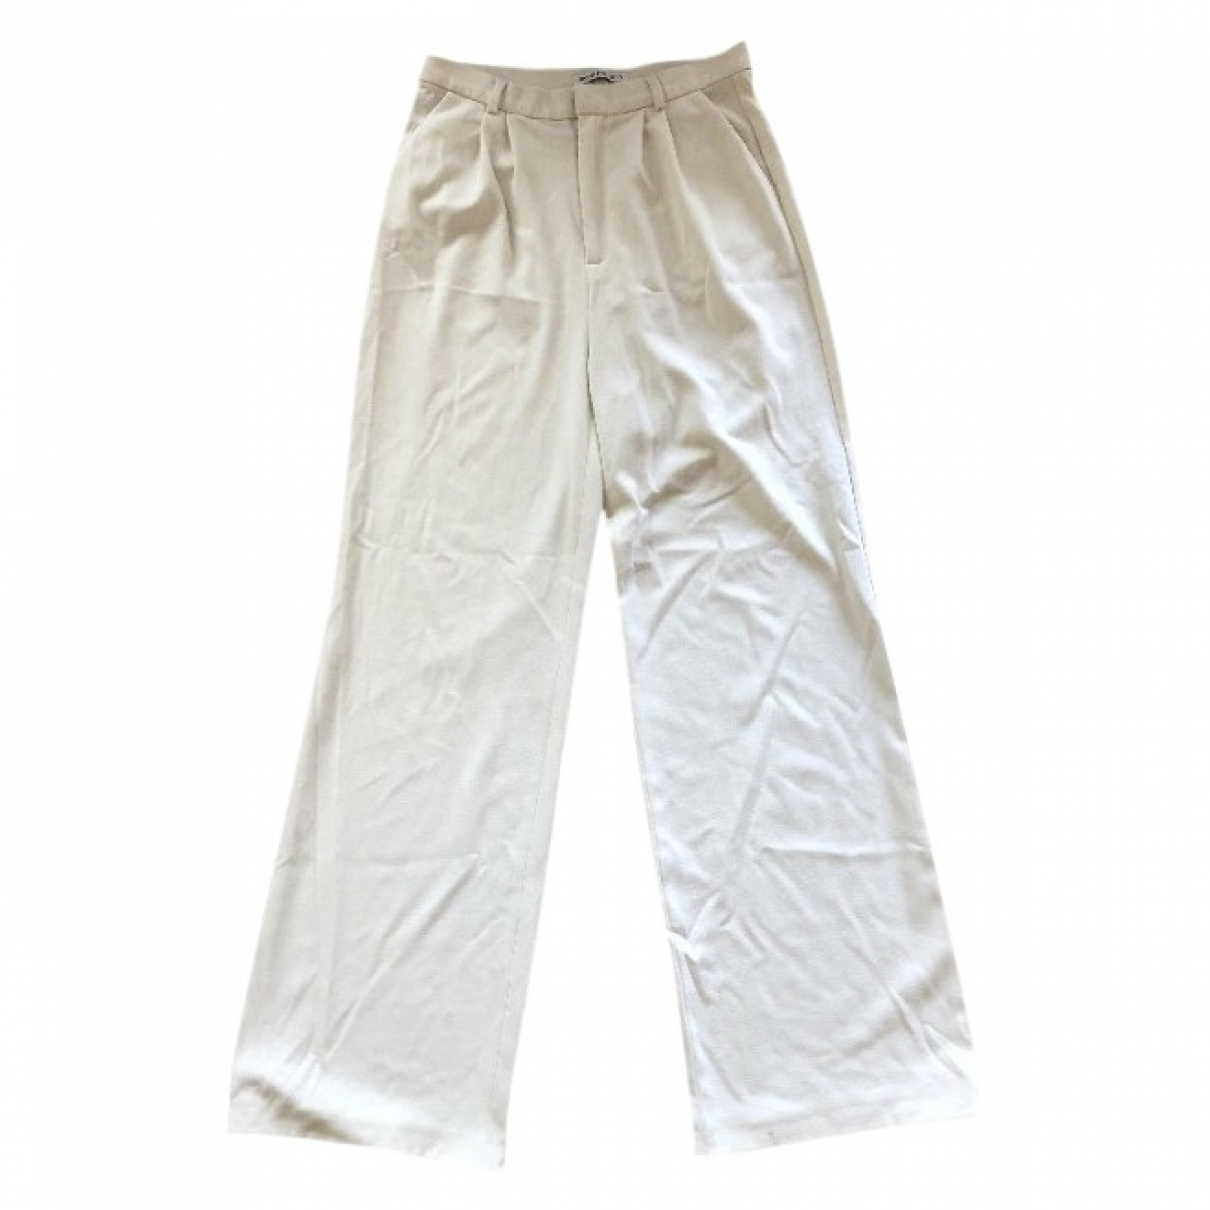 Rodebjer \N White Cotton Trousers for Women M International